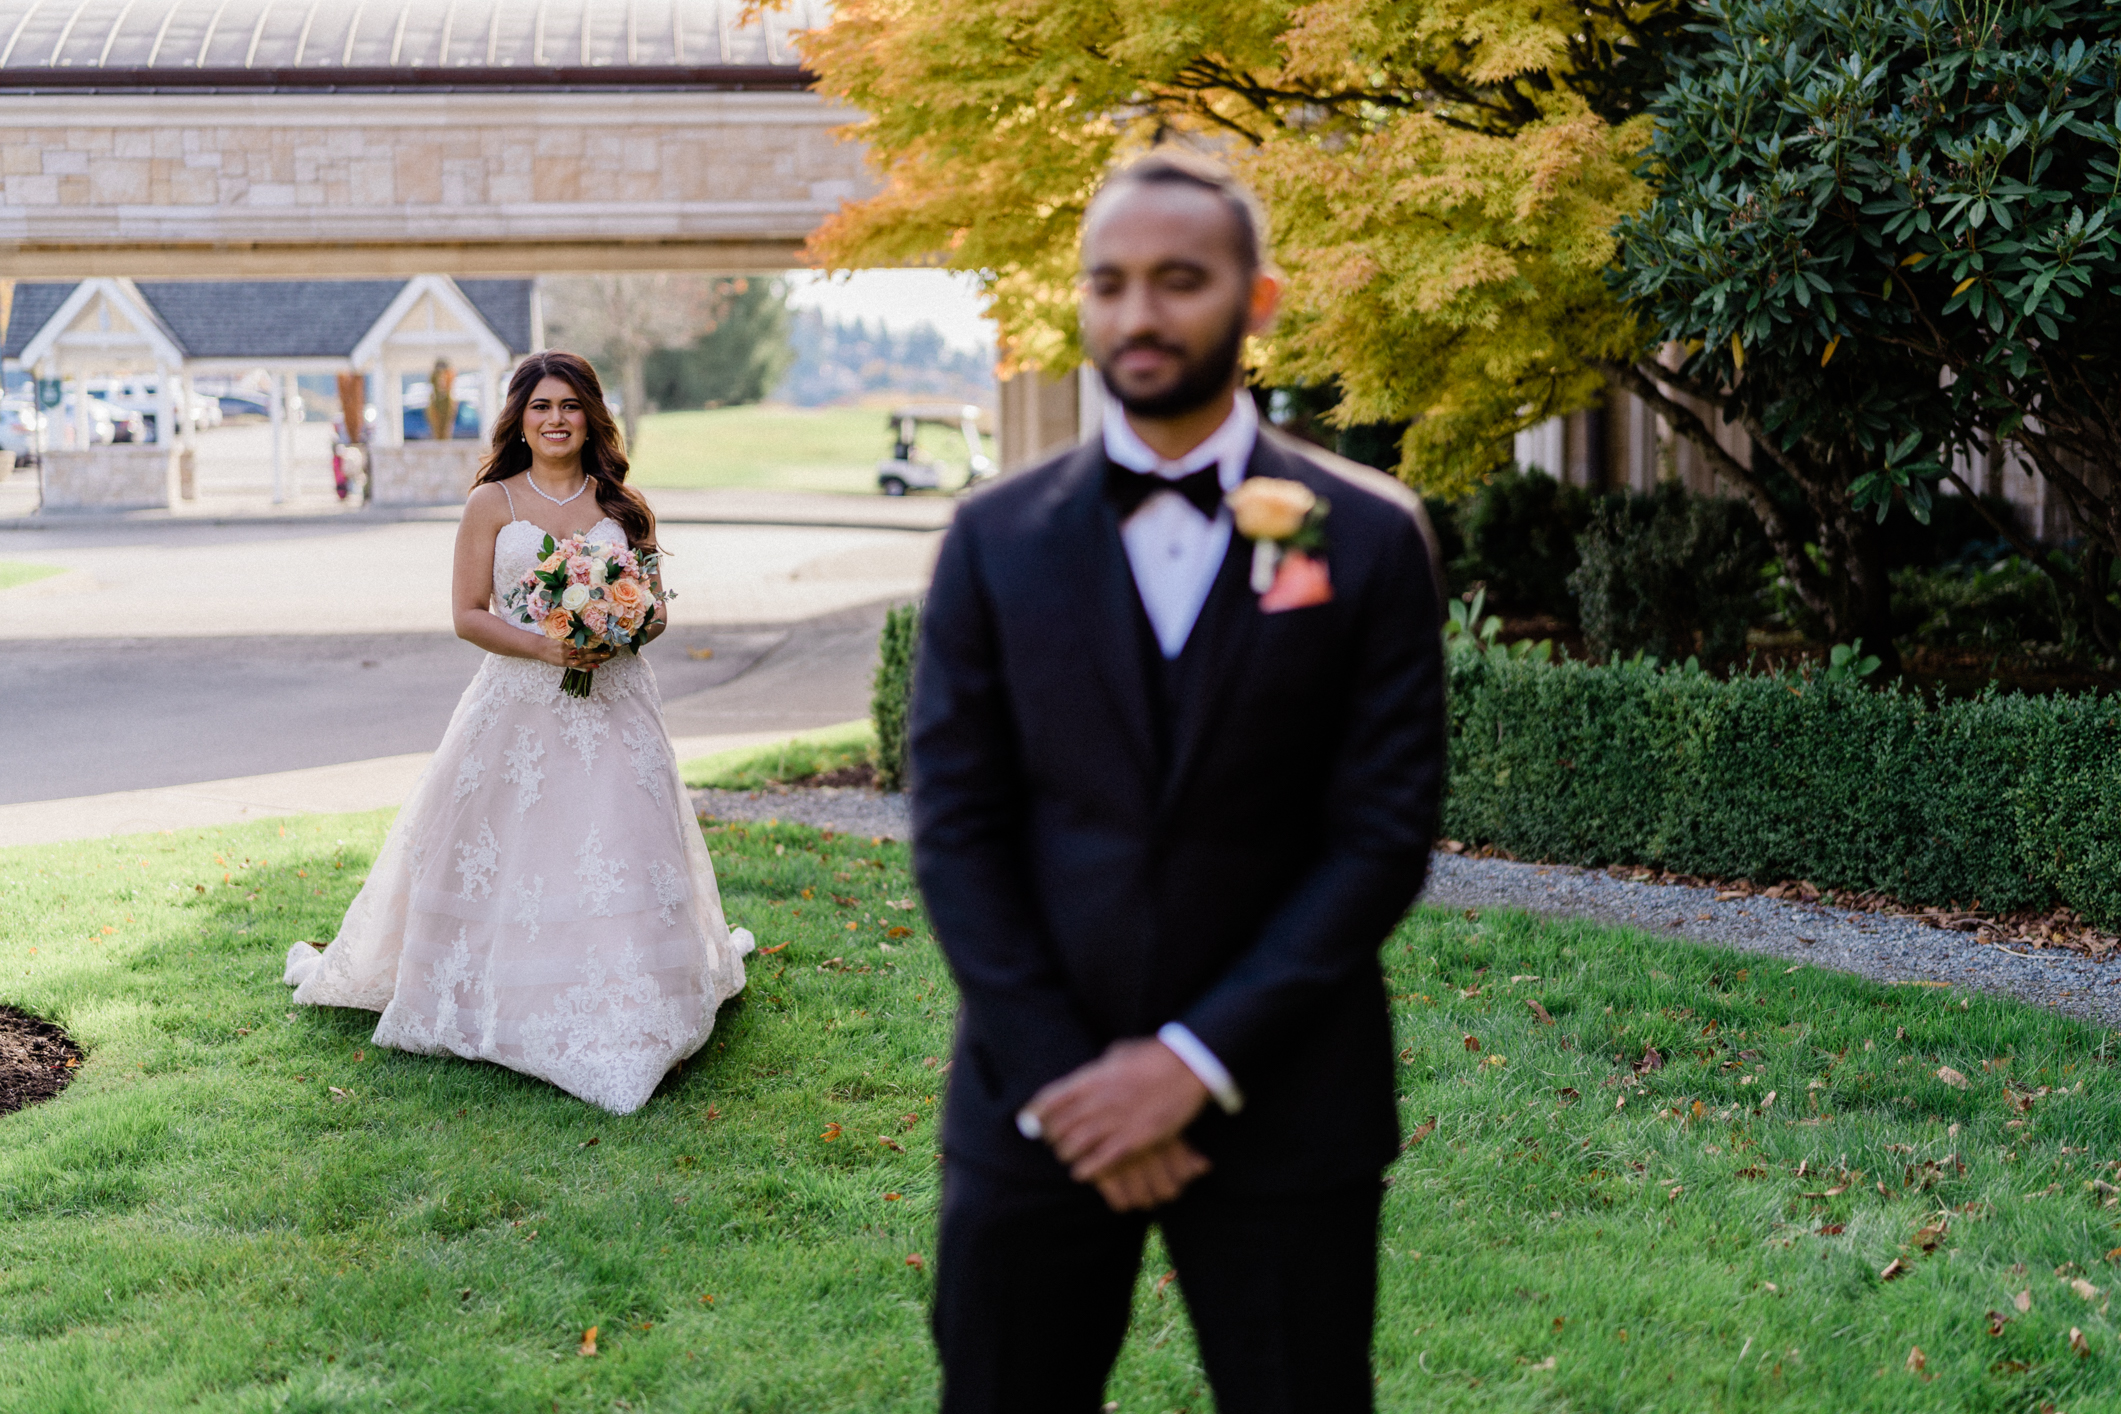 seattle wedding photographers capture first look